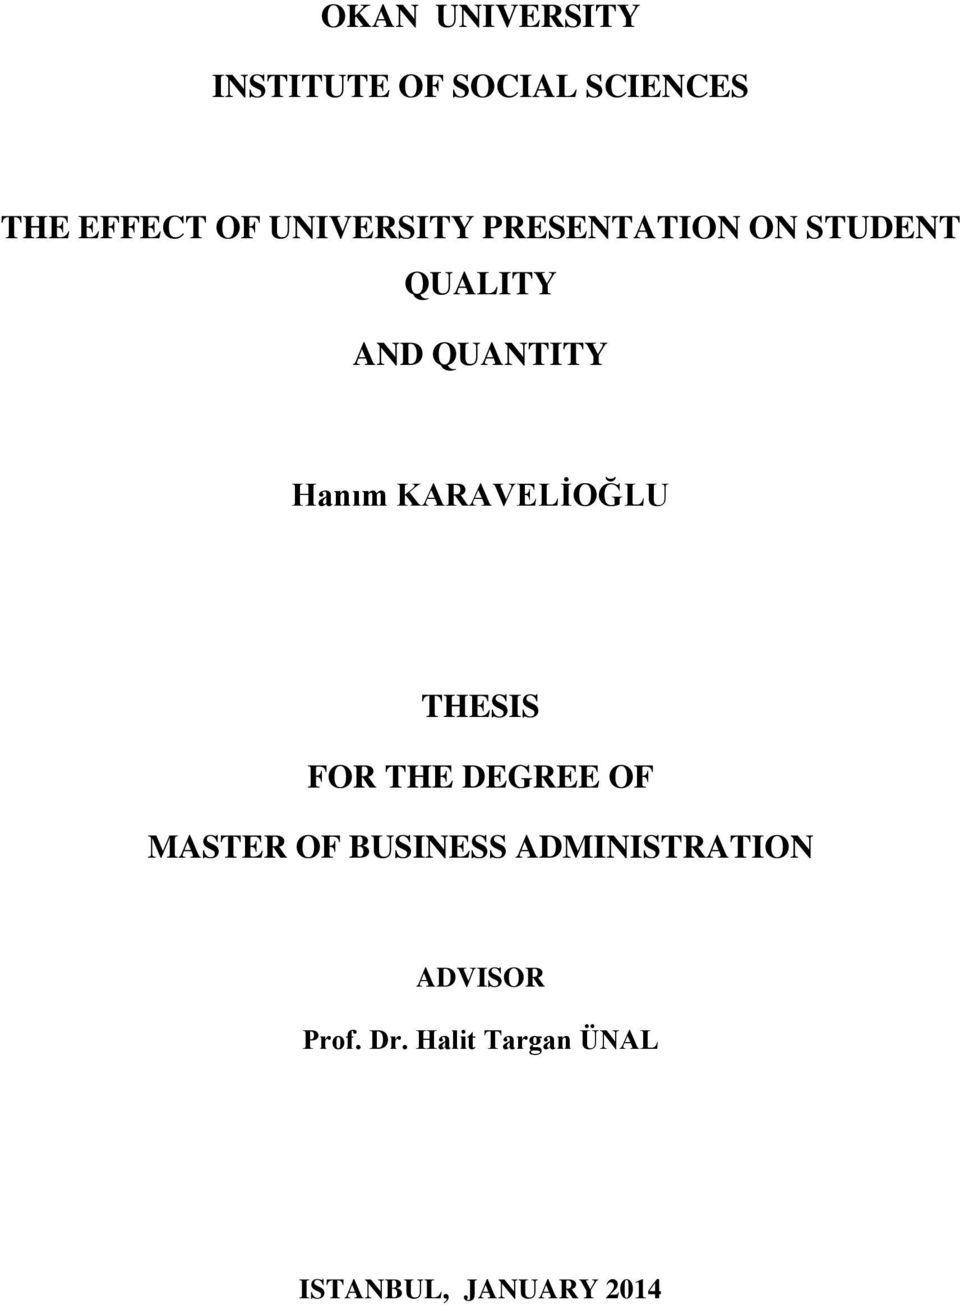 KARAVELĠOĞLU THESIS FOR THE DEGREE OF MASTER OF BUSINESS